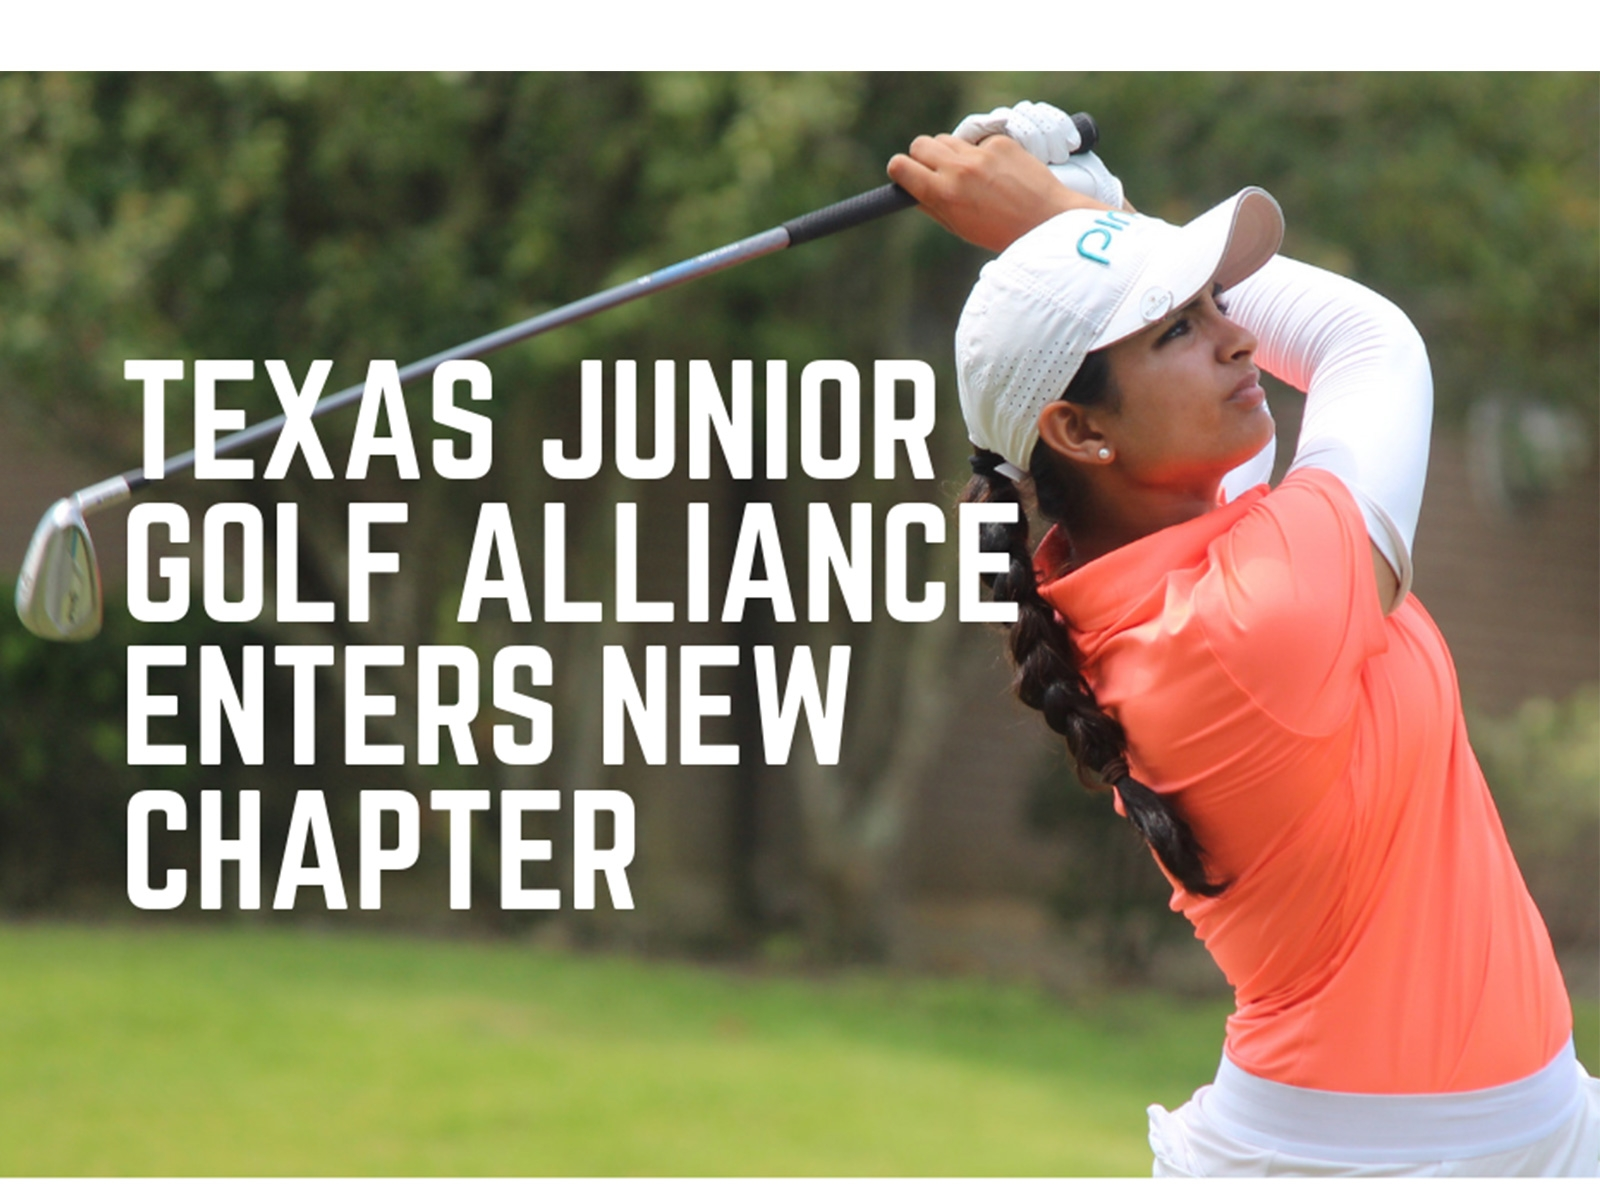 Texas Junior Golf Alliance Enters New Chapter